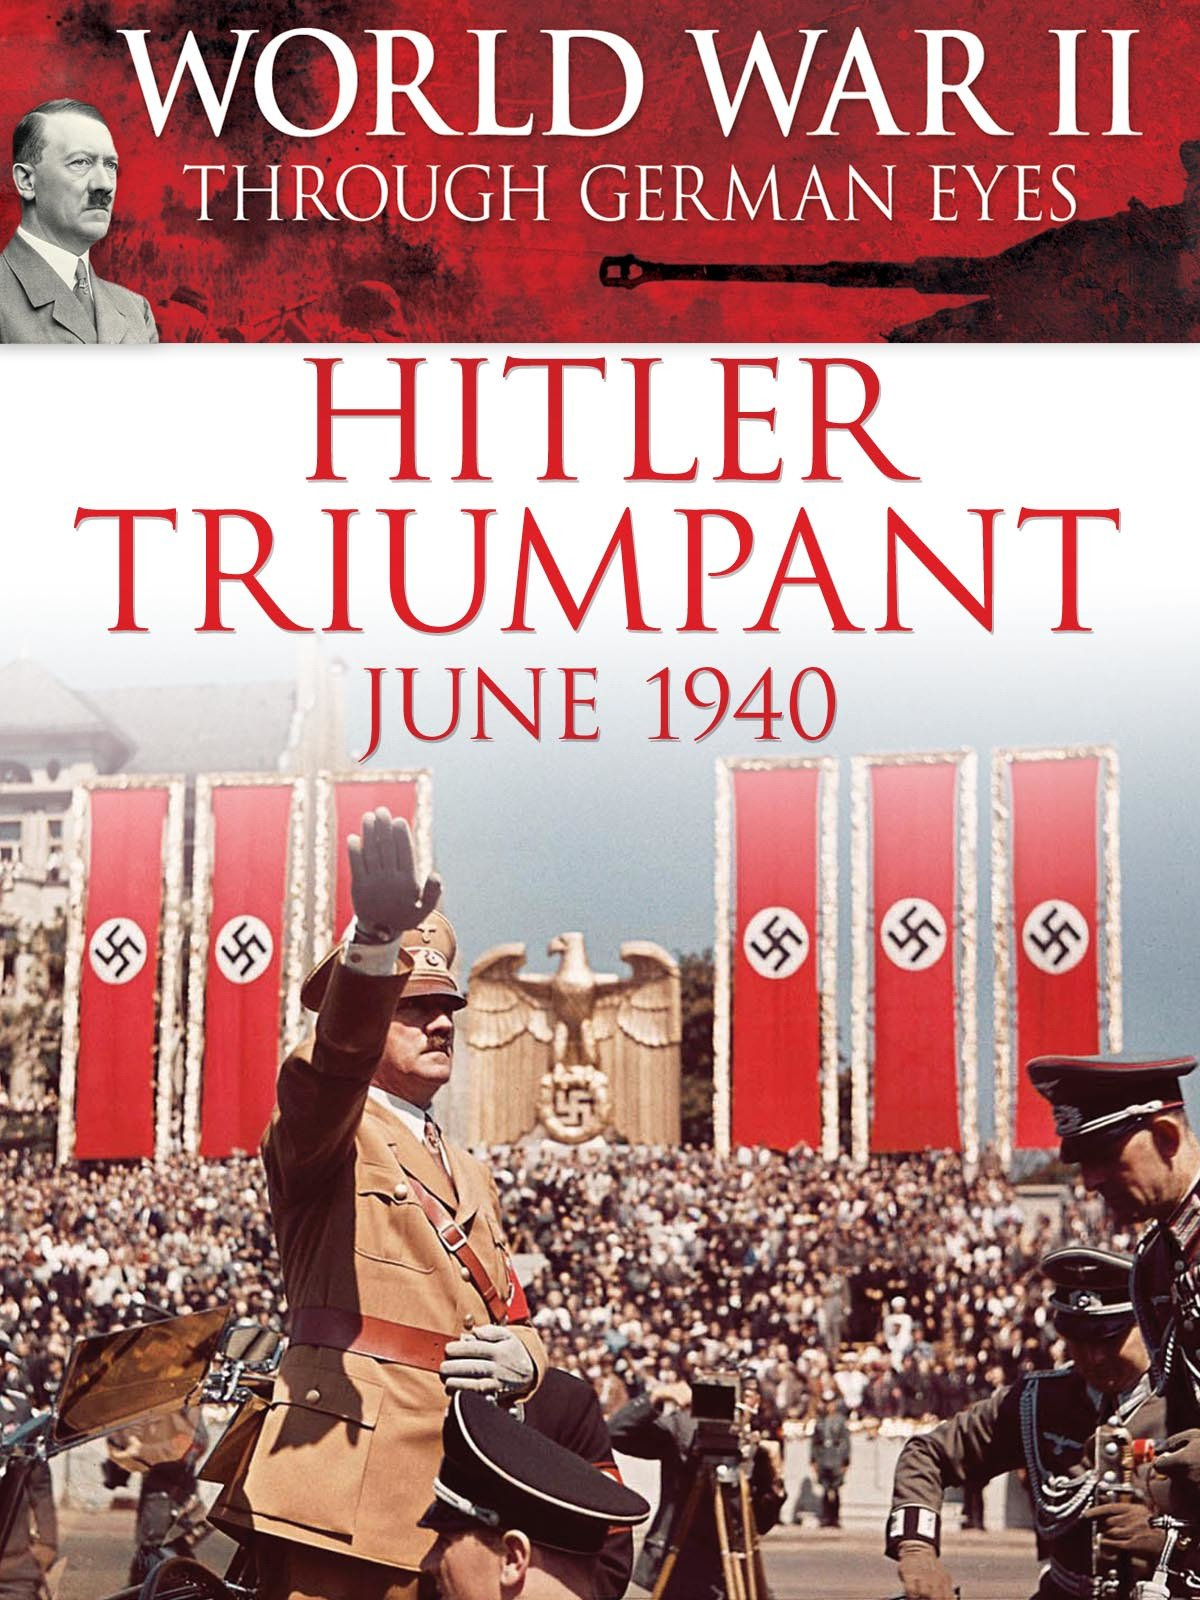 World War II Through German Eyes: Hitler Triumphant June 1940